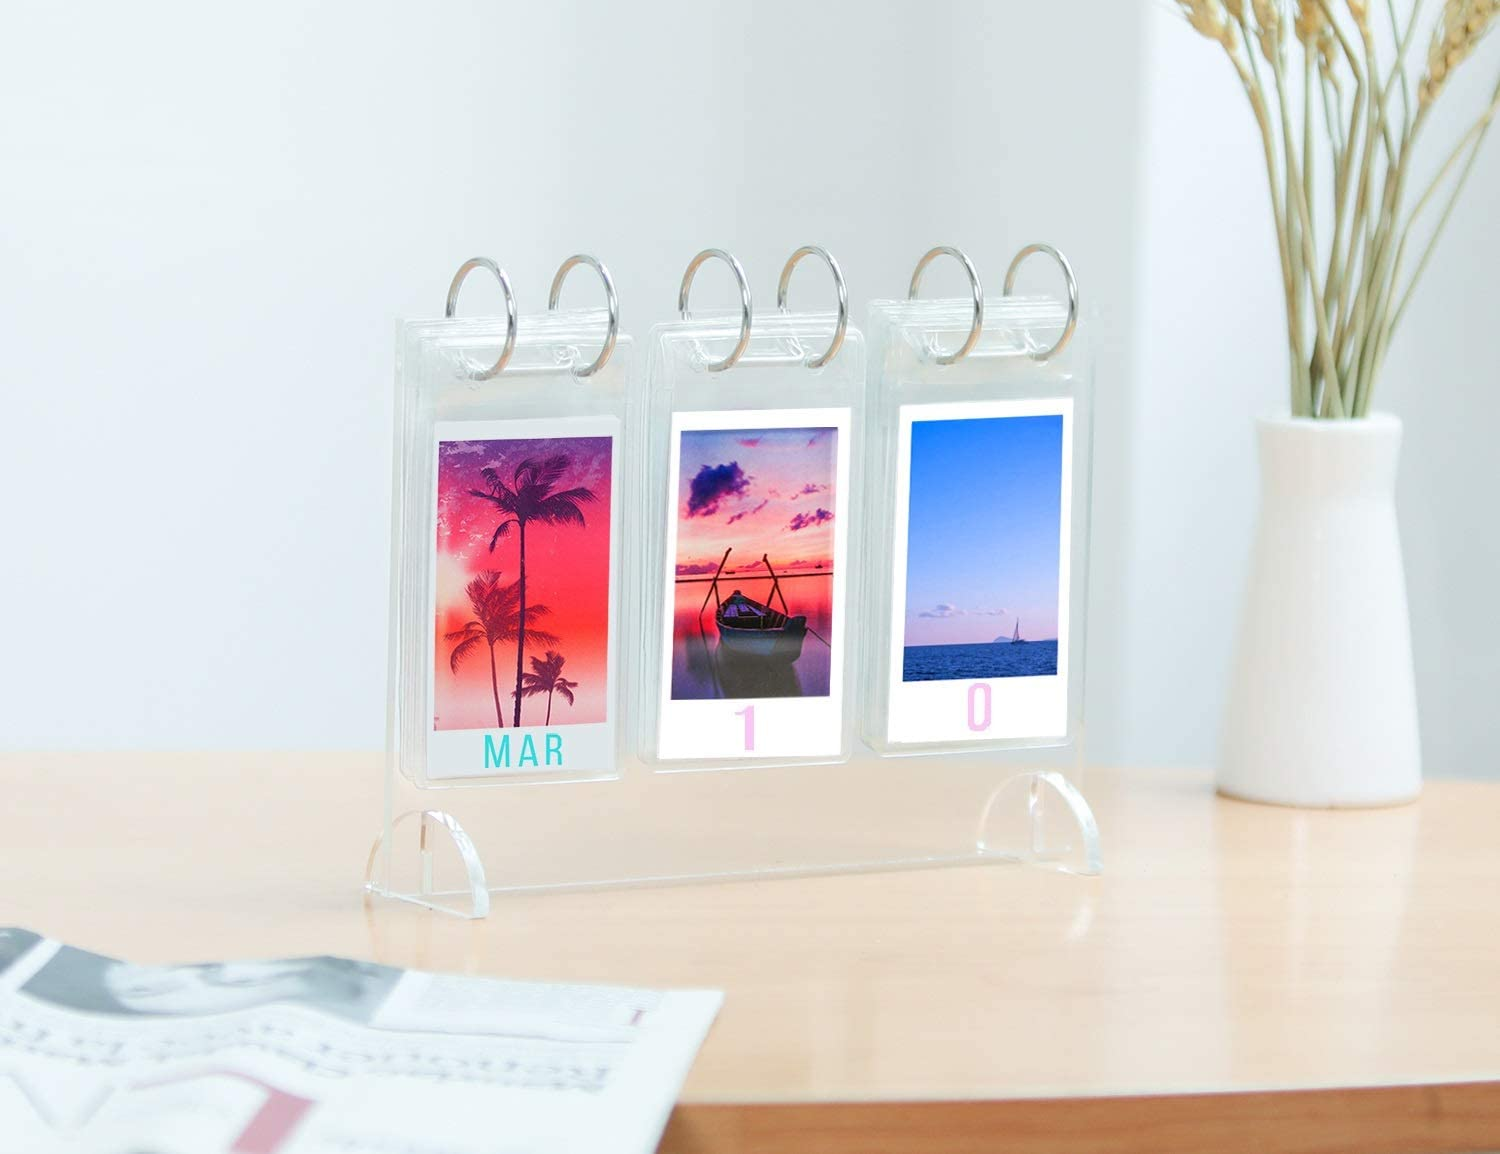 for Instax Mini 7s 8 8 9 25 26 50s 70 90 Film Acrylic Tabletop Flip-Style Calendar-Style Photo Album Polaroid Instant Z2300 /& Gift 52 Photos Display WINKINE Desktop Mini Photo Album Collection